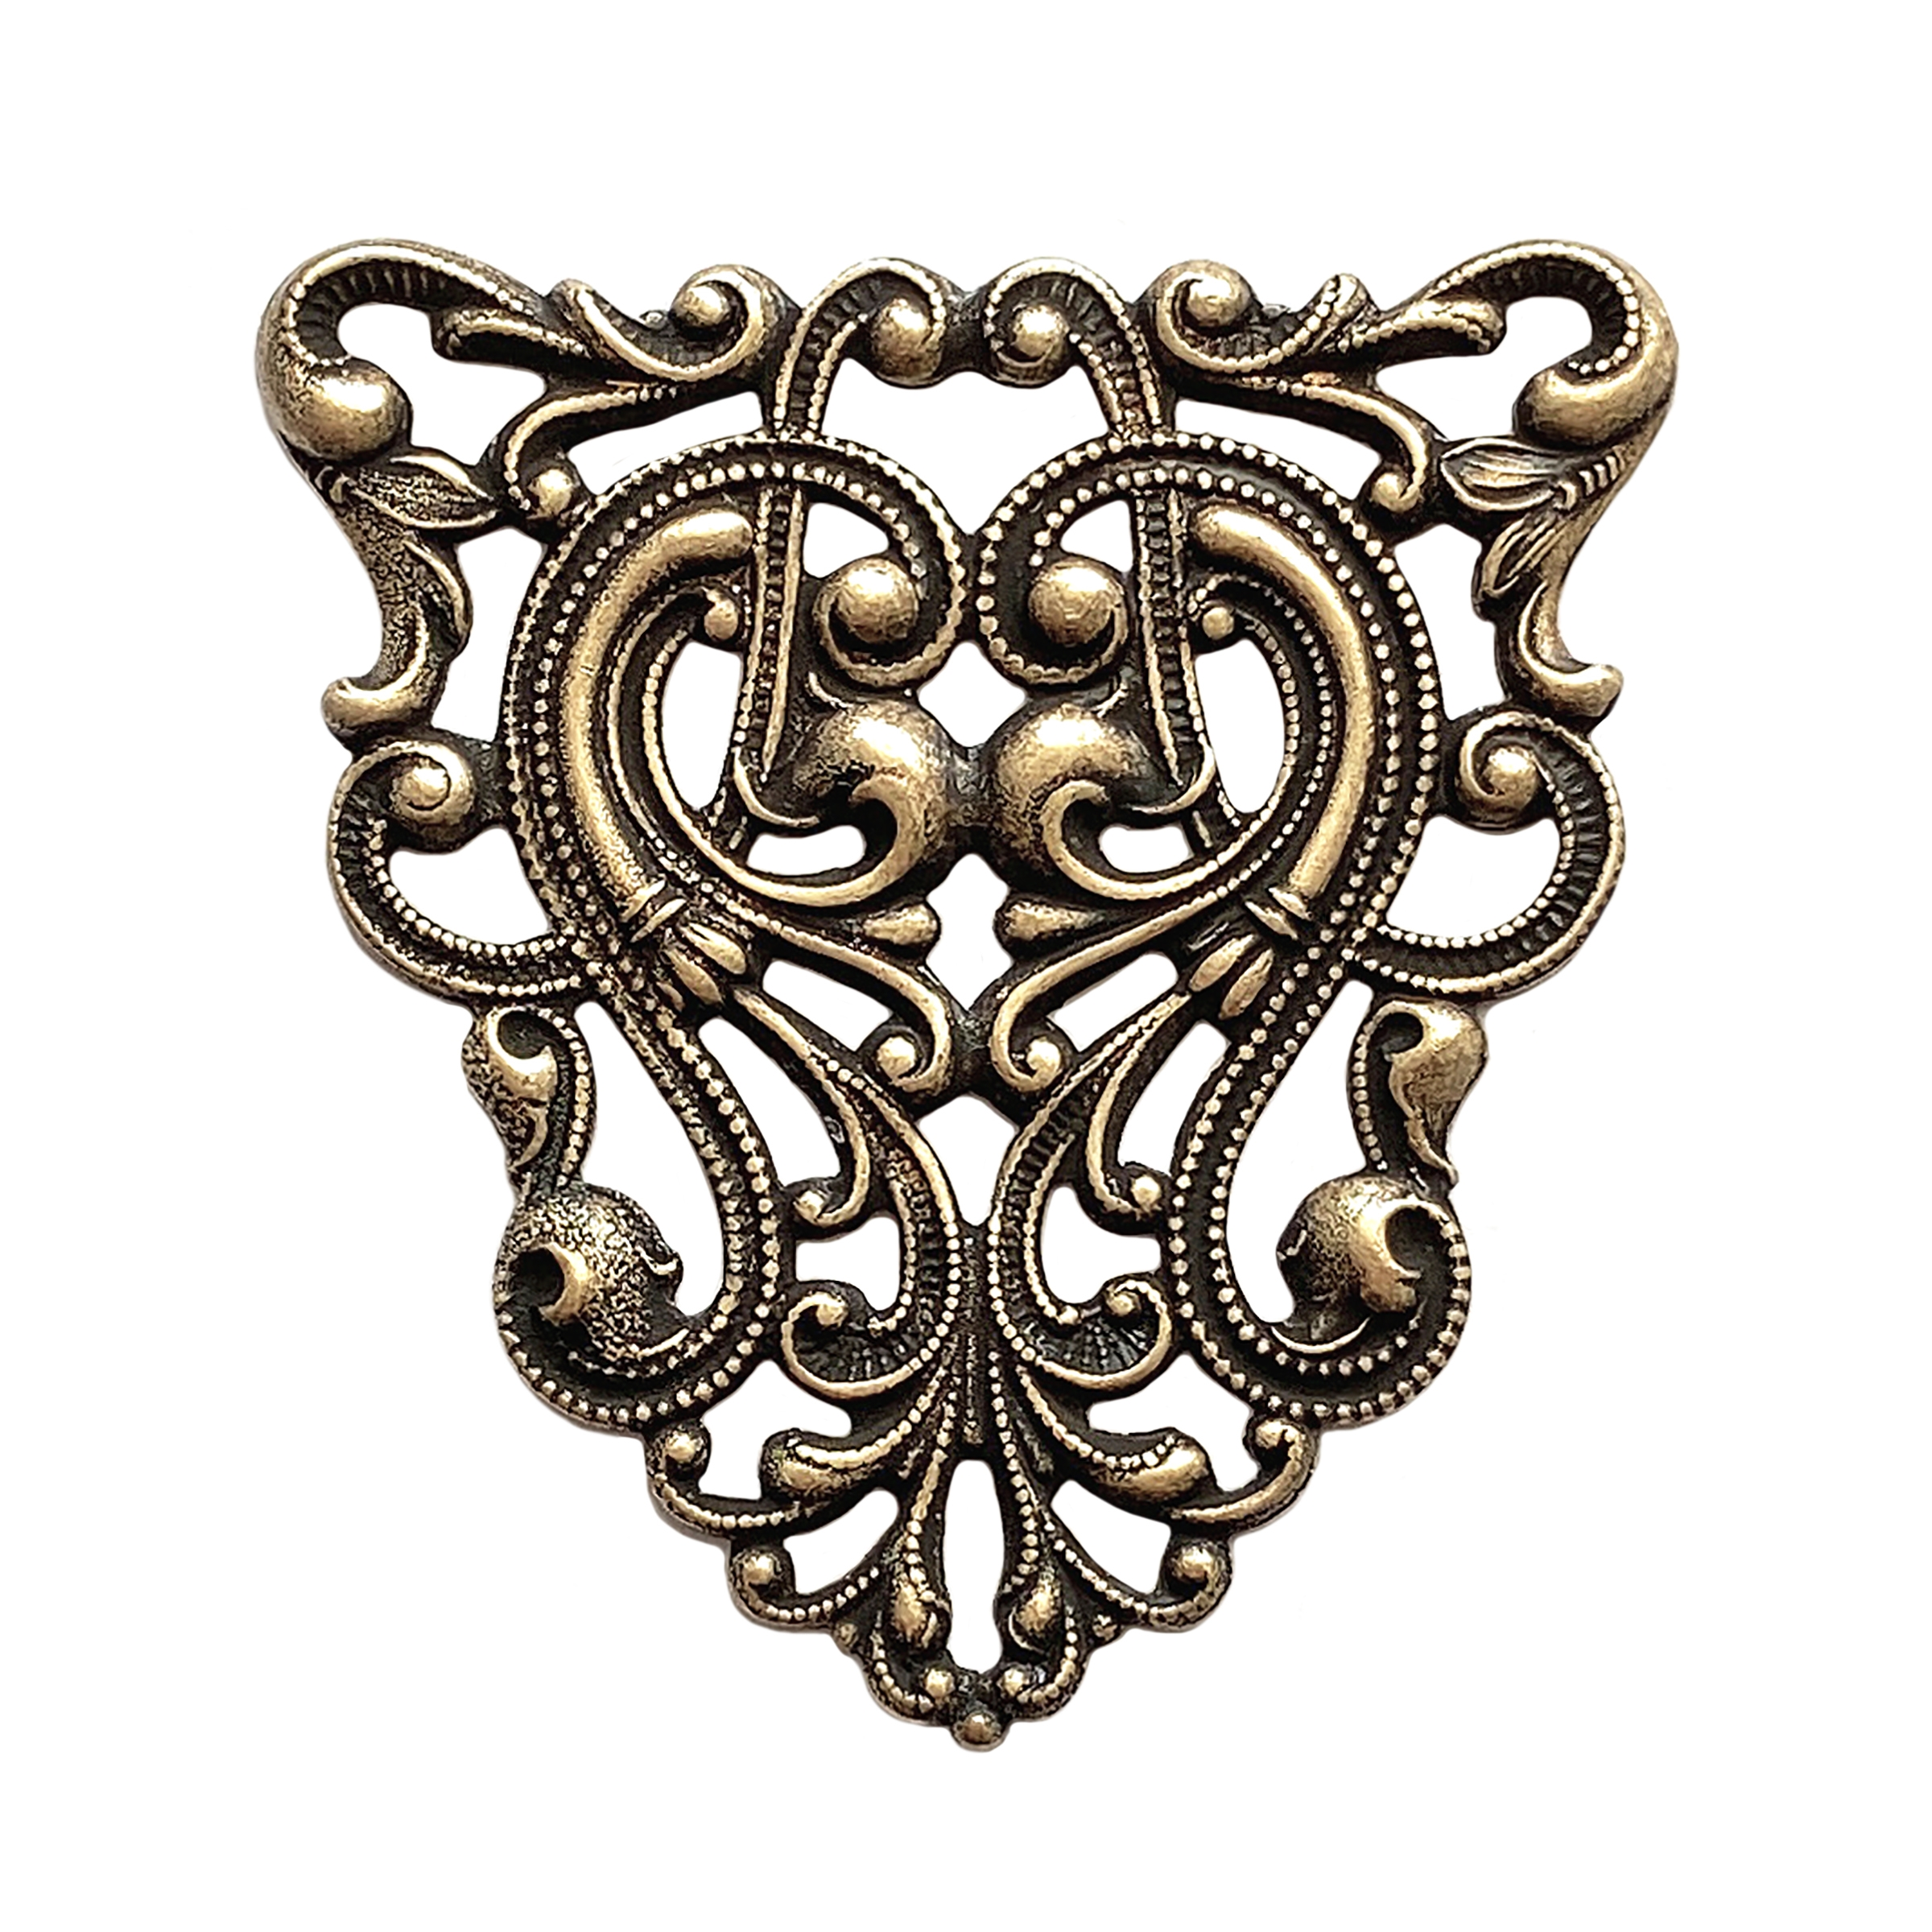 4 pieces Made in the USA Antiqued Brass Vintage Design Art Nouveau Filigree Cross Drop